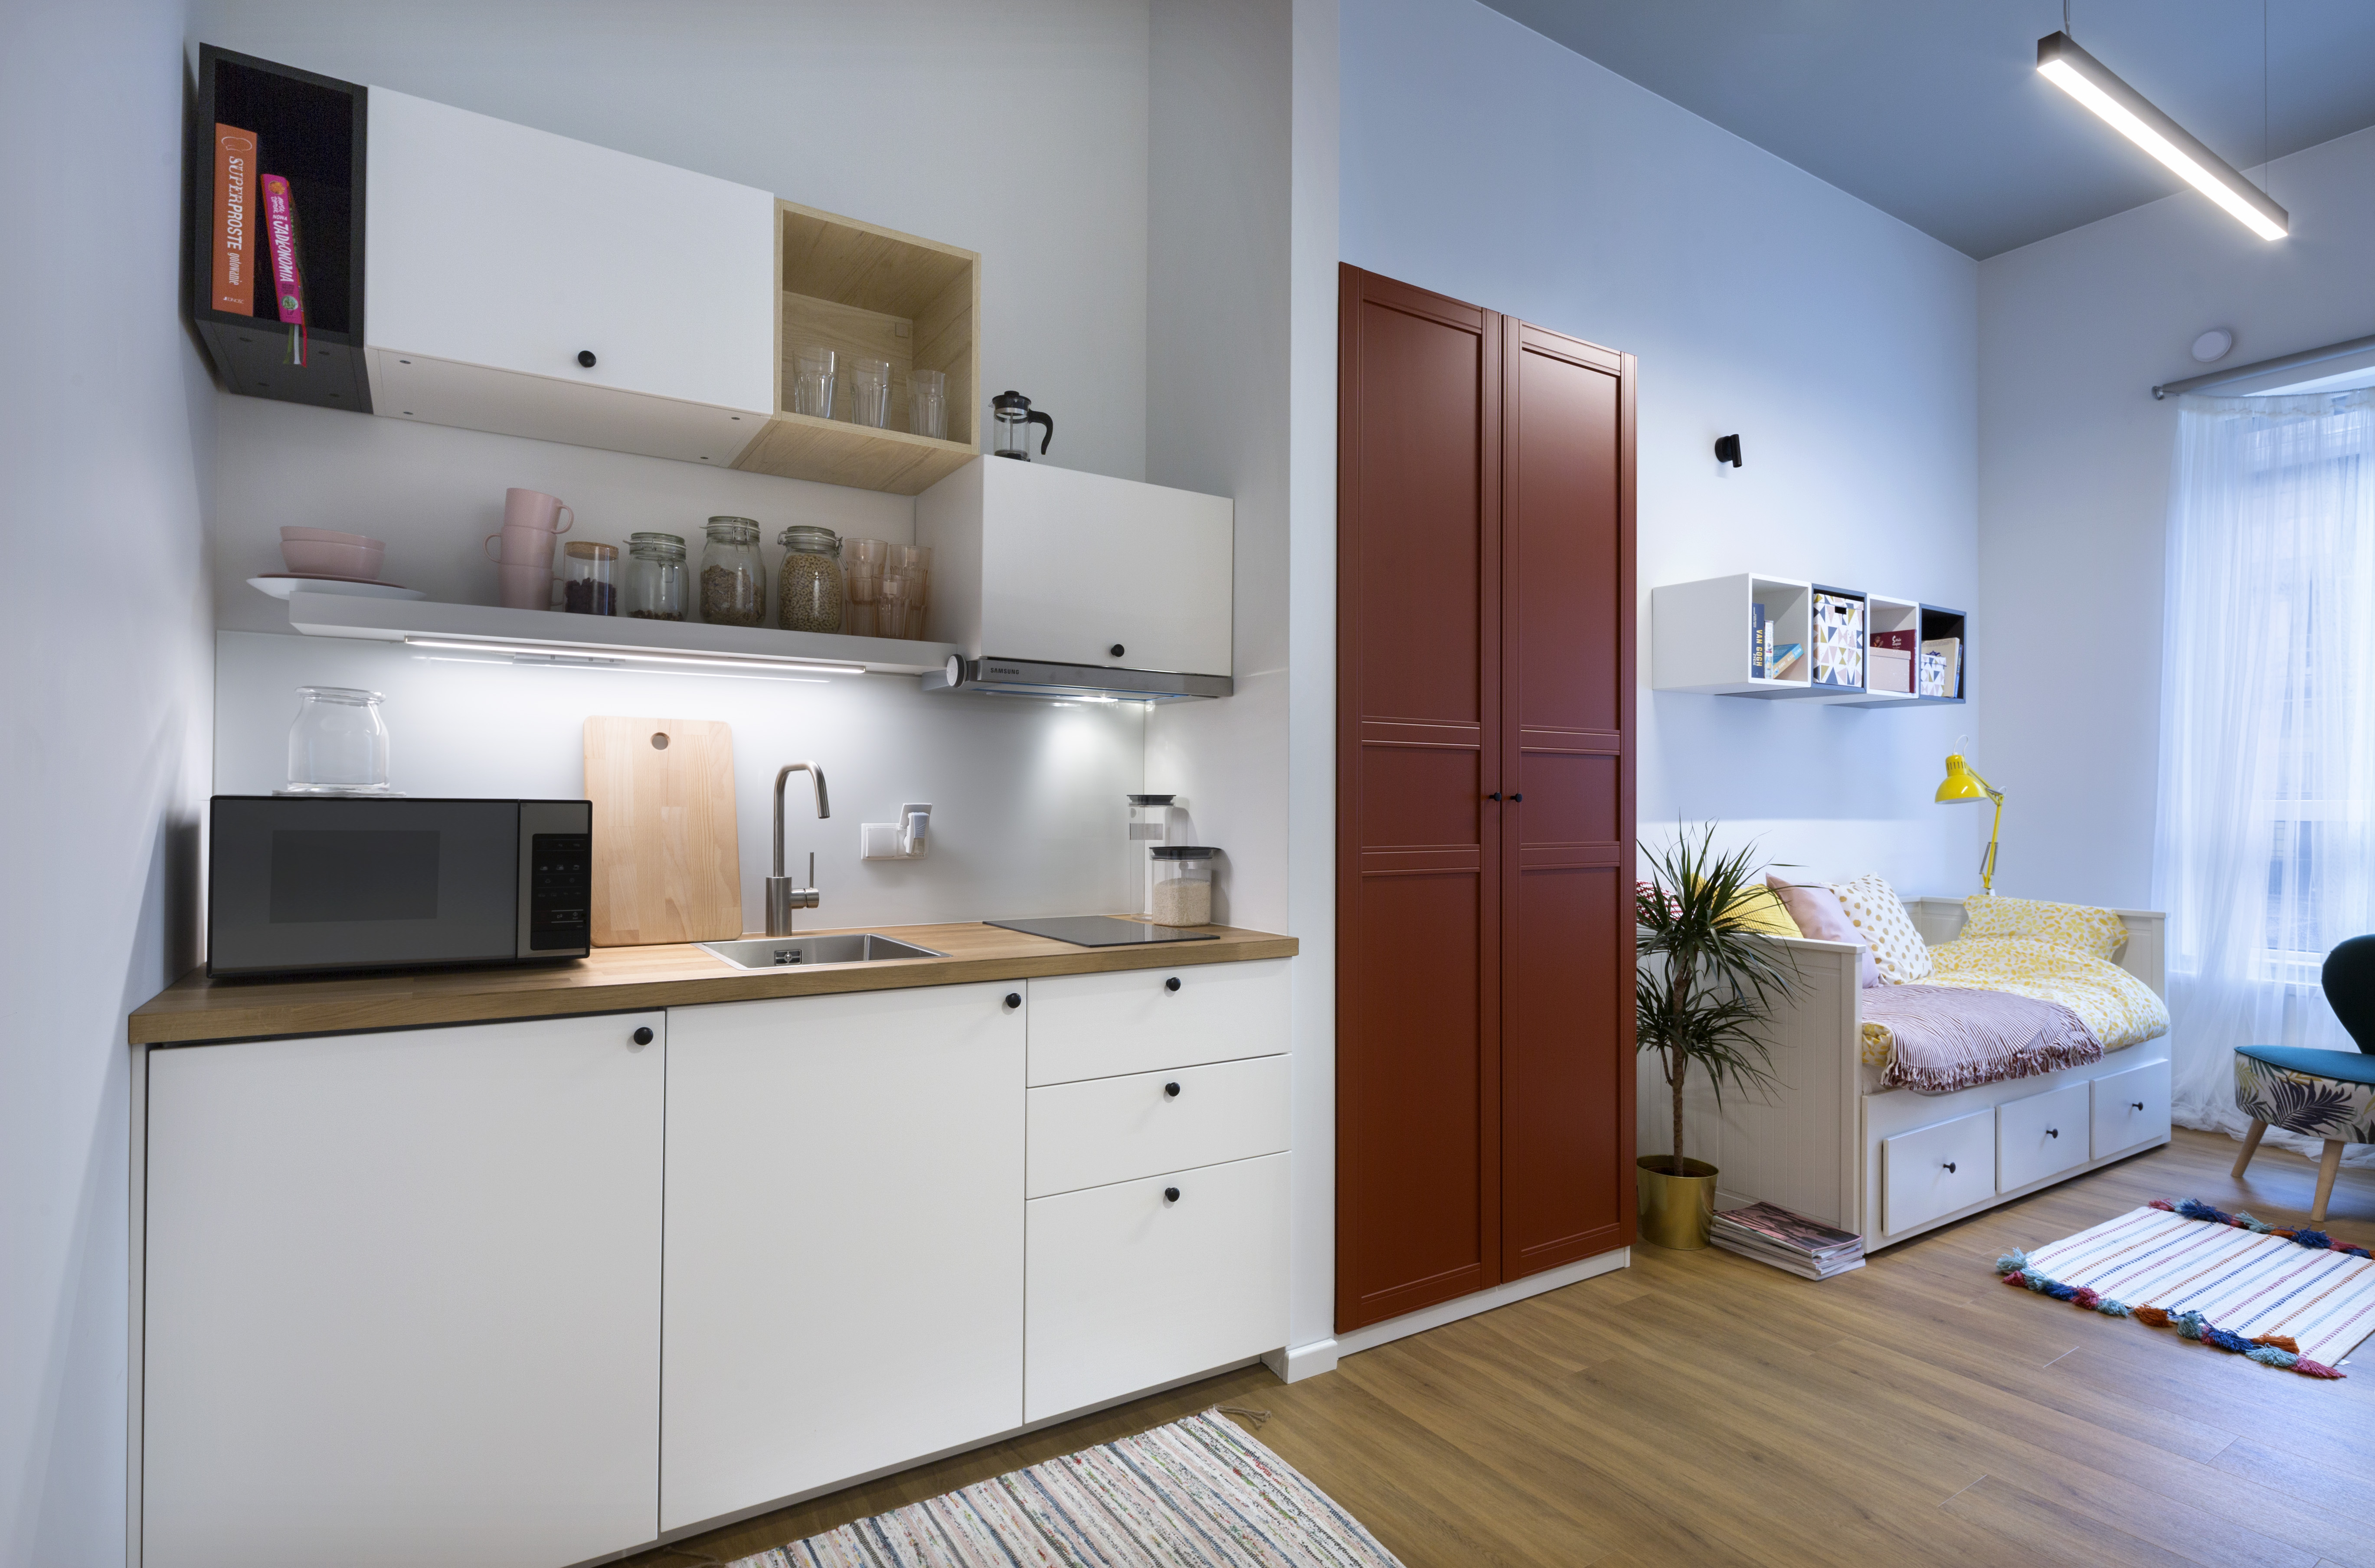 Student House For College Students Dormitory Erasmus Accommodation For Foreigners Livinnx Krakow